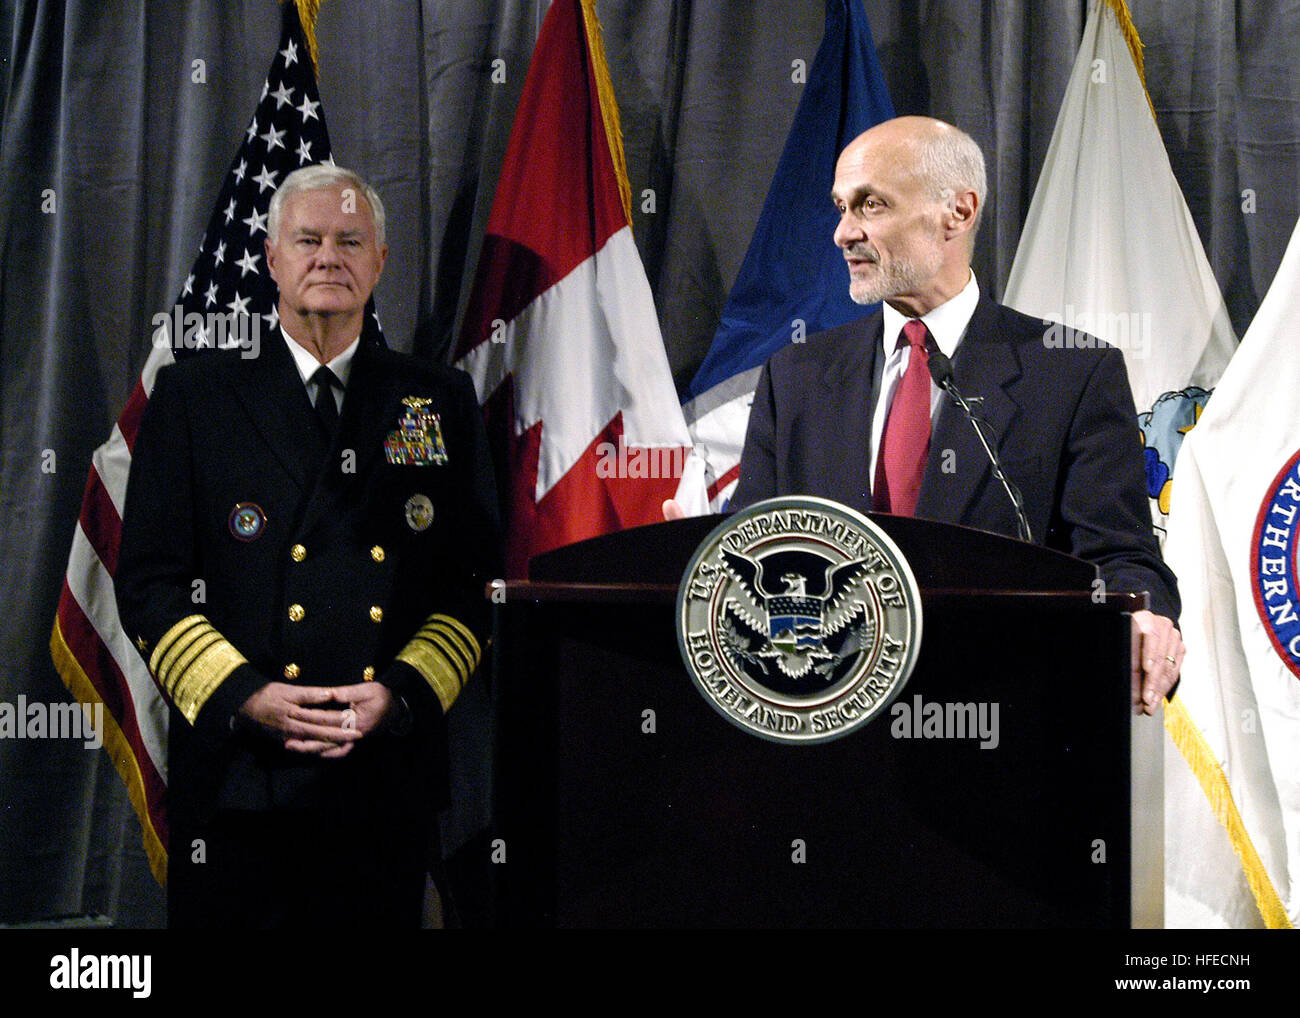 050506-N-2227W-002 Colorado Springs, Colo. (May 6, 2005) - Homeland Security Secretary Michael Chertoff talks with - Stock Image